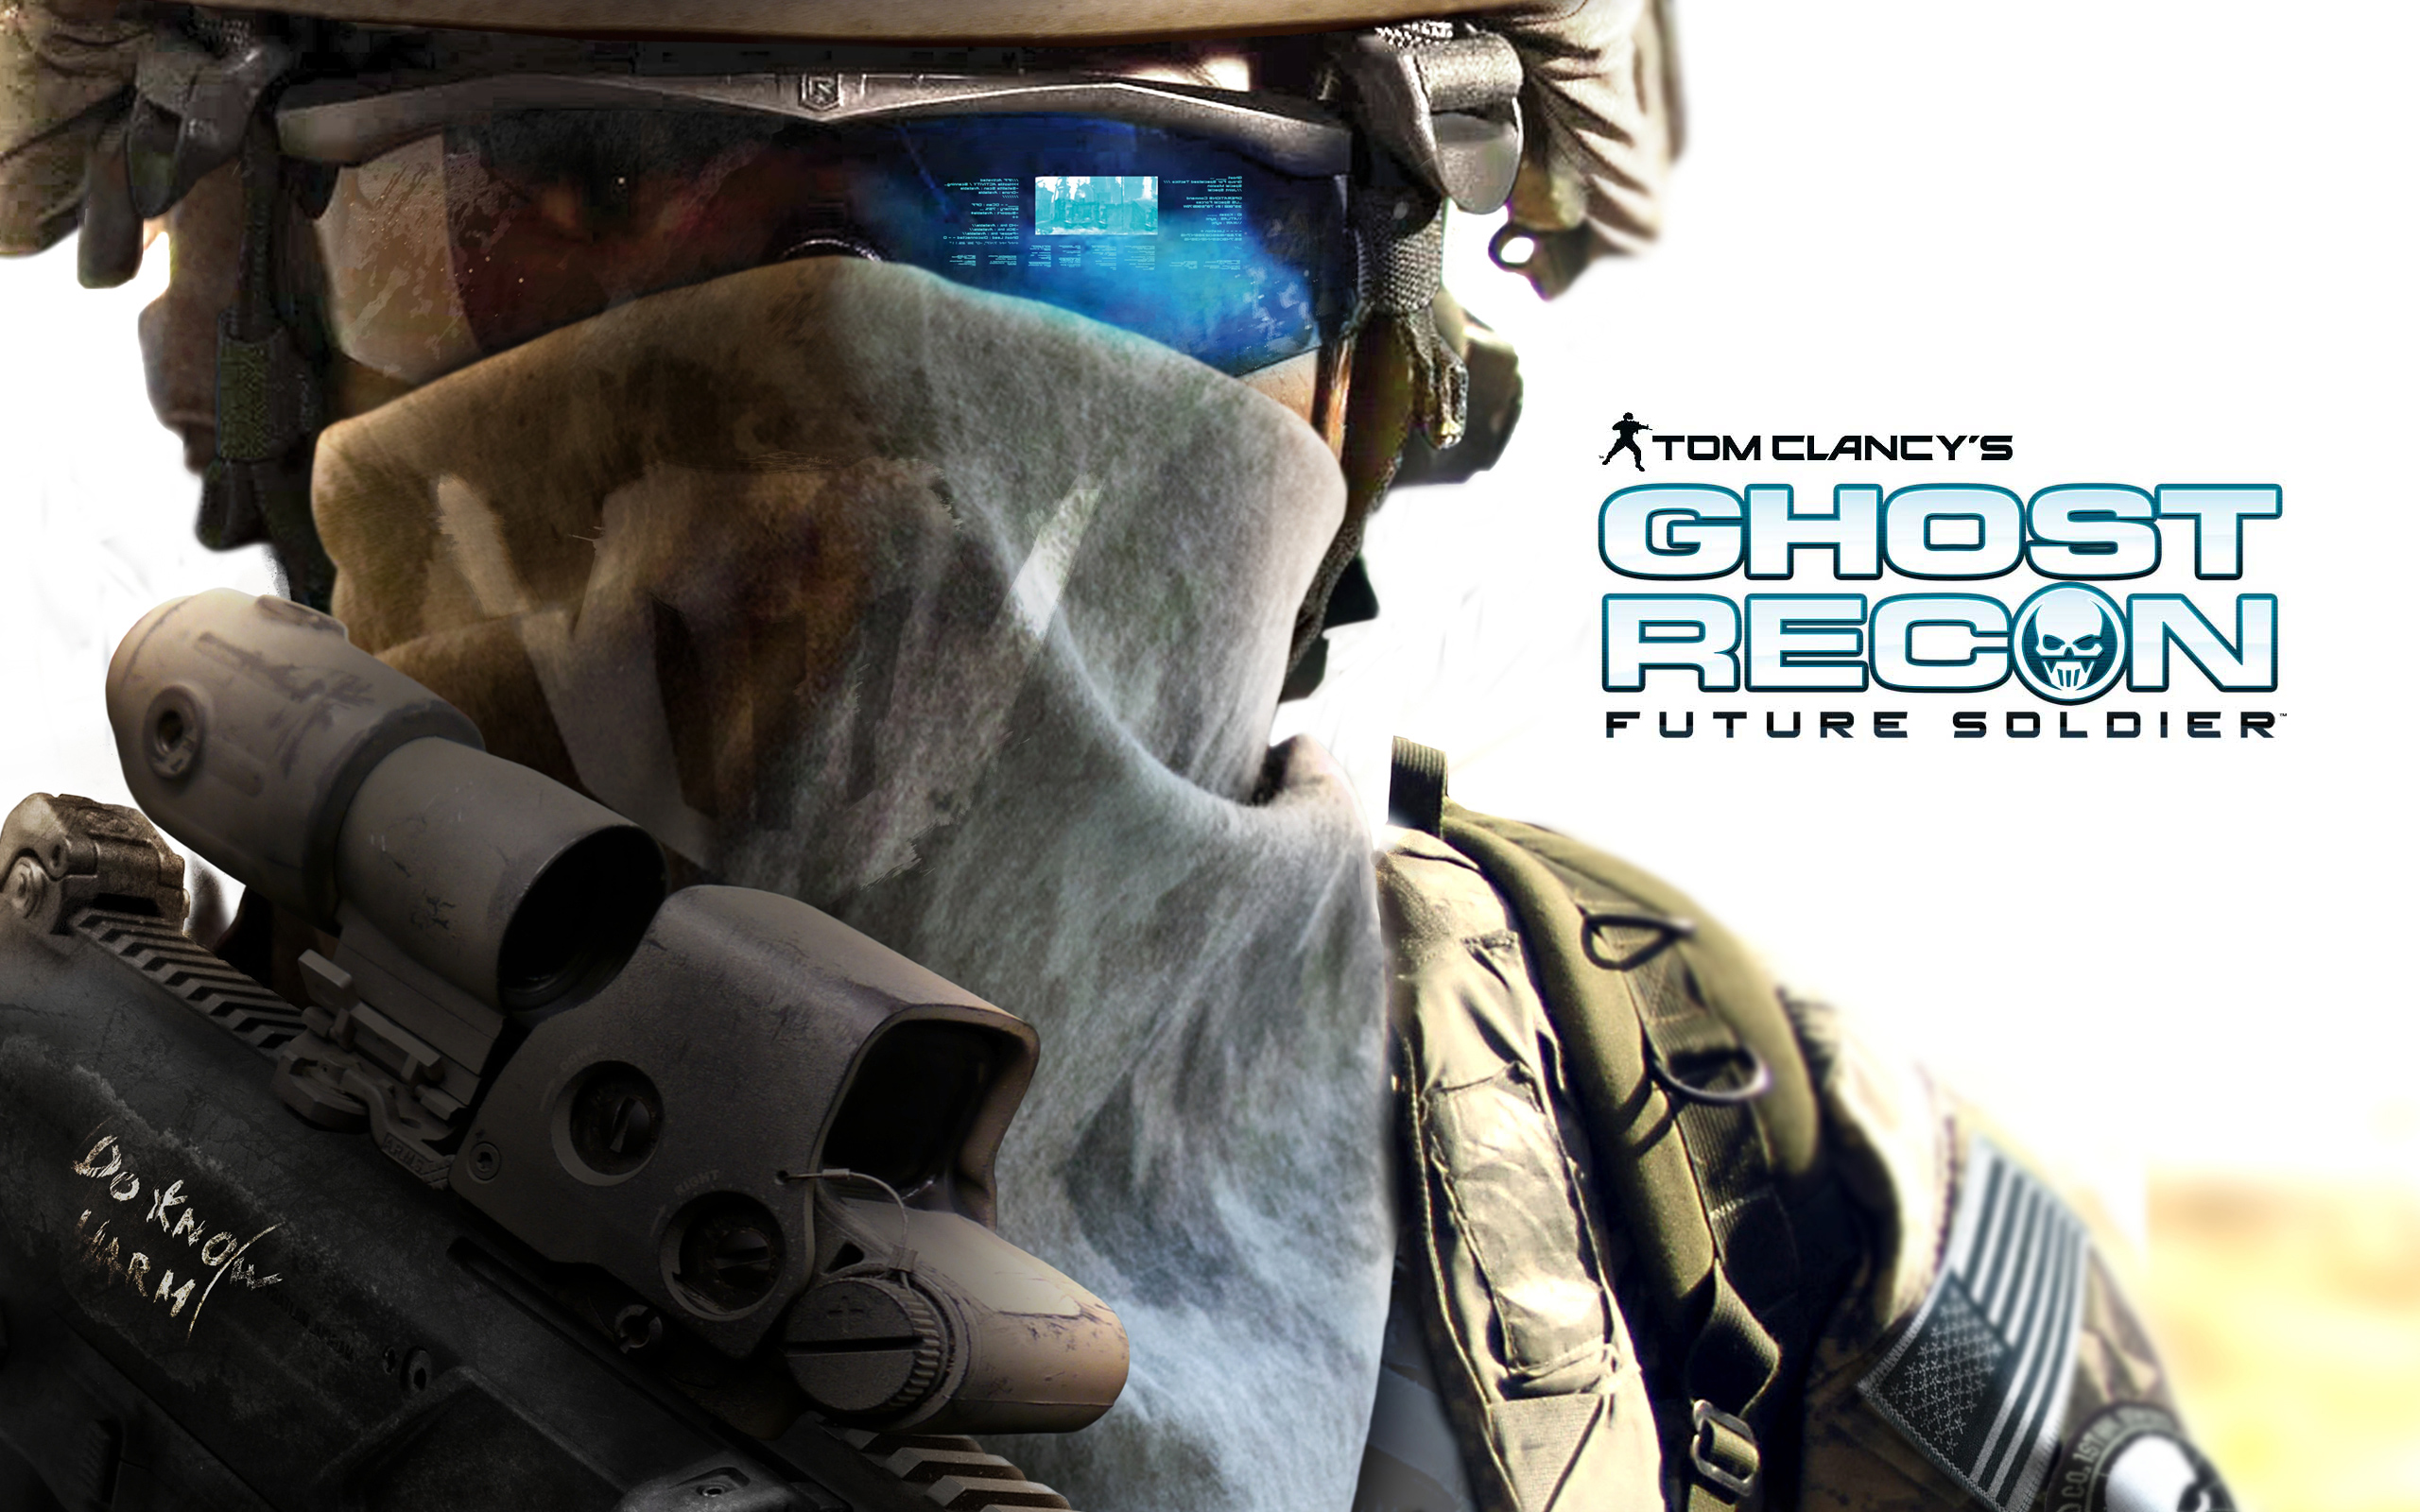 Tom Clancys Ghost Recon Future Soldier wallpaper 9